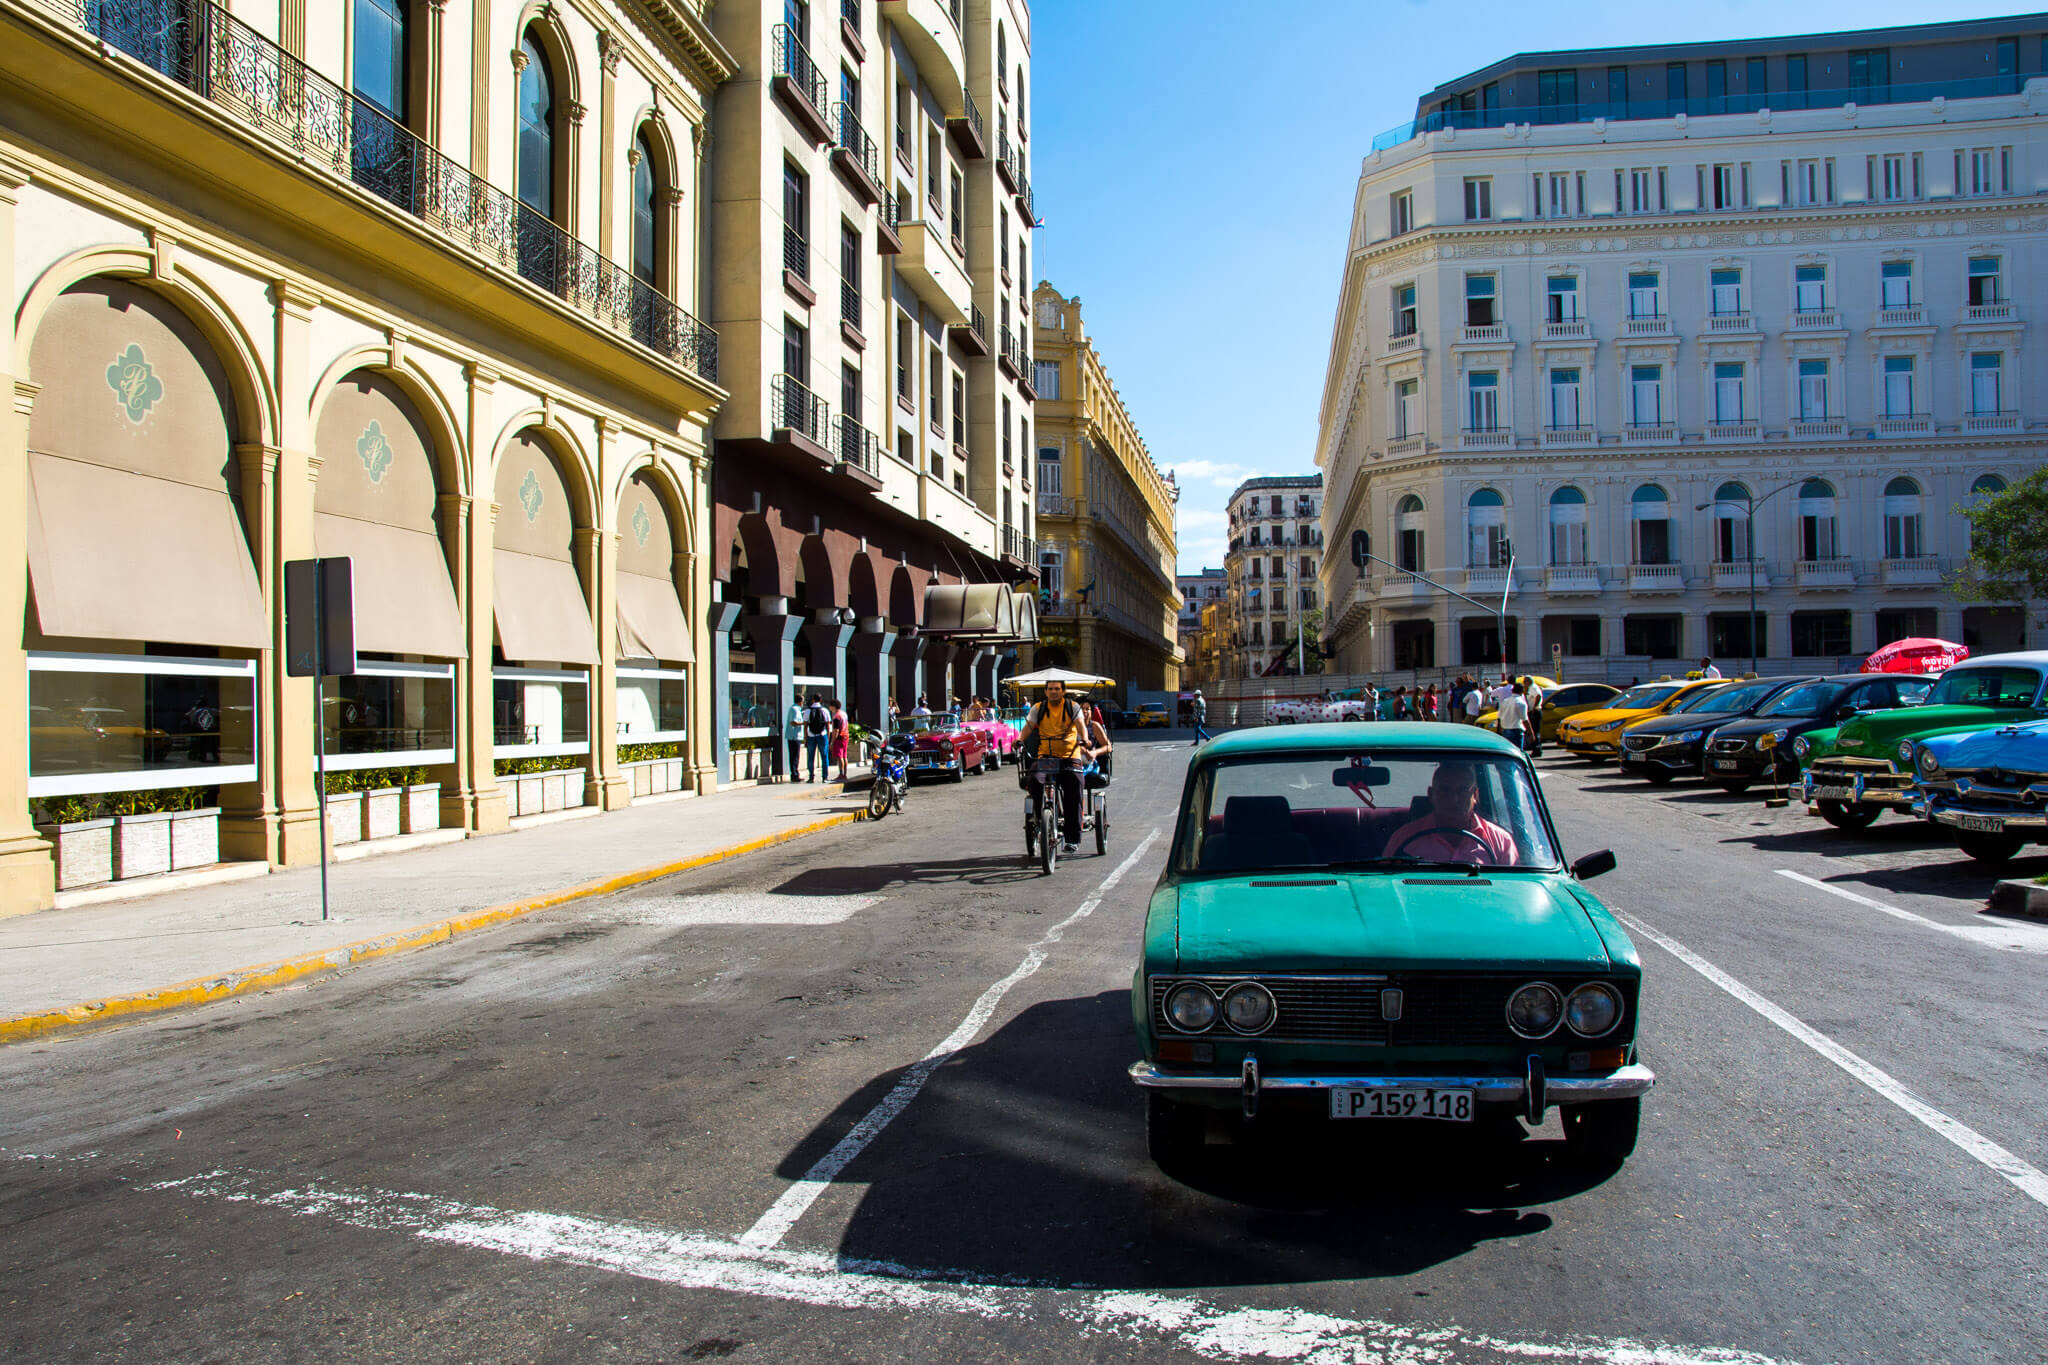 The classic car charm of Havana, Cuba